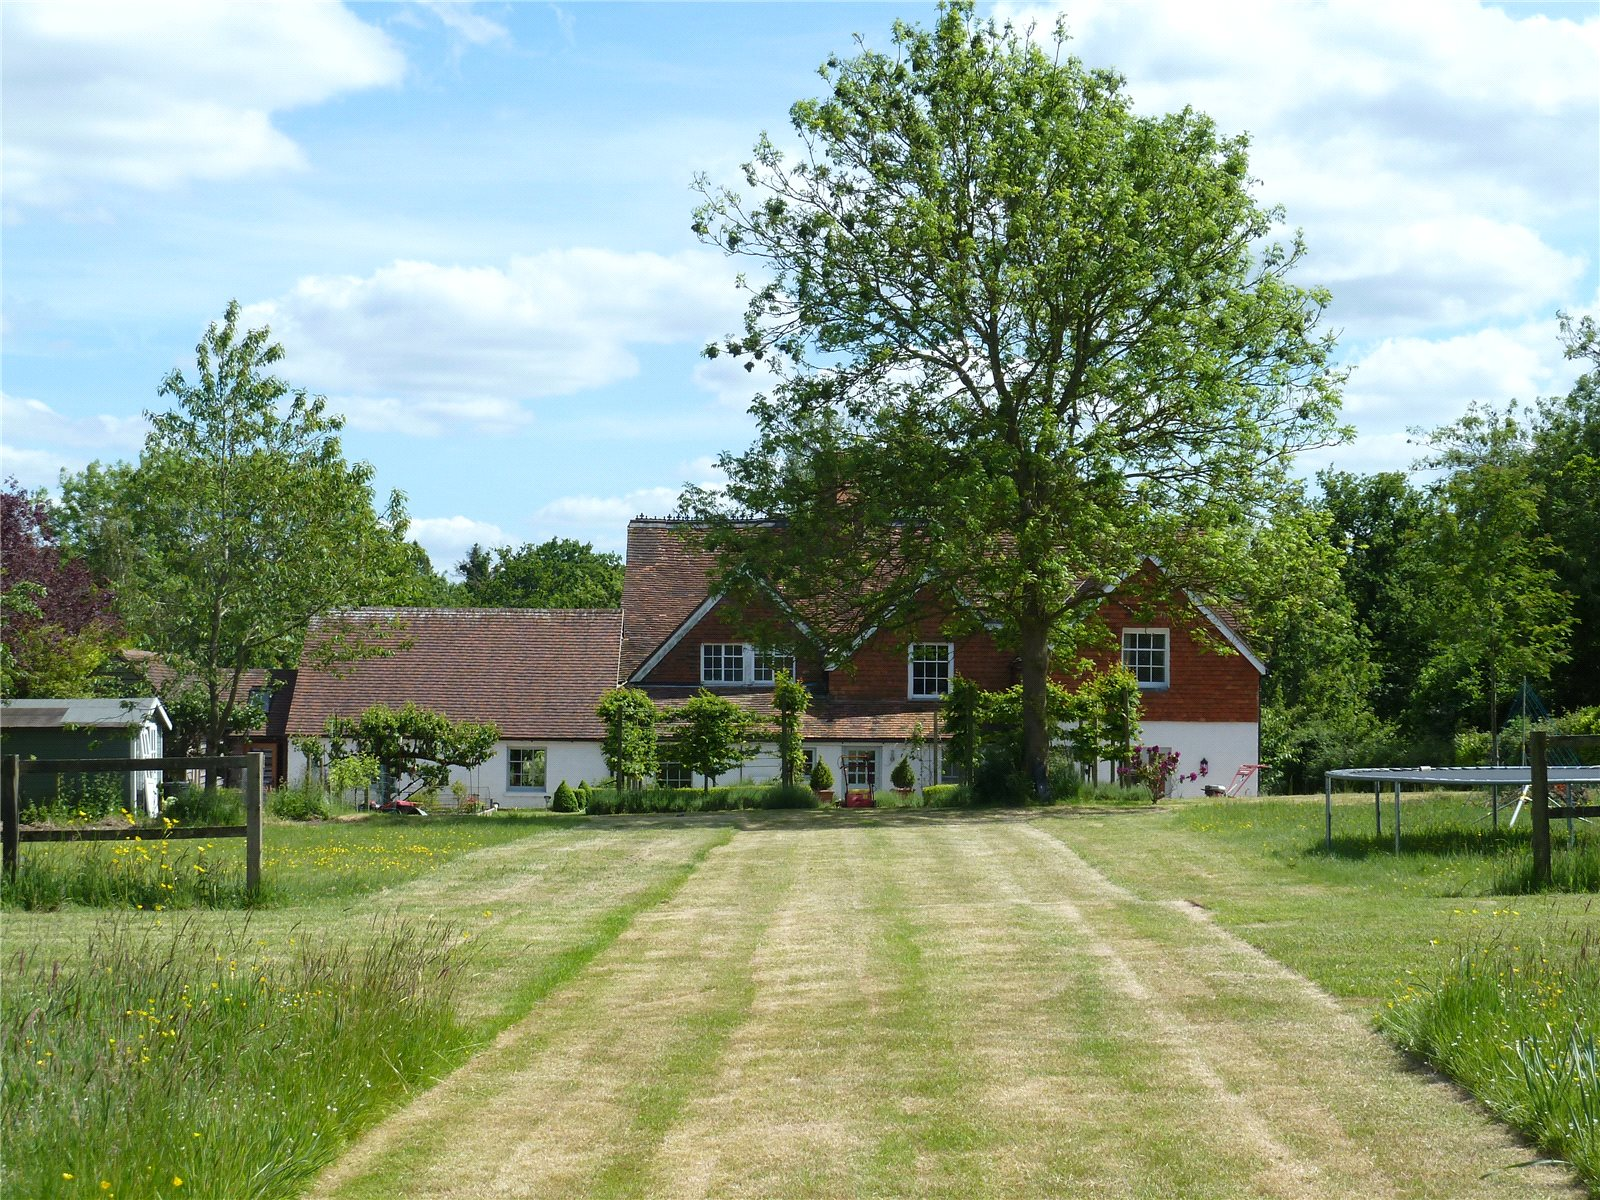 gore end newbury berkshire rg20 a luxury home for sale in newbury south east england